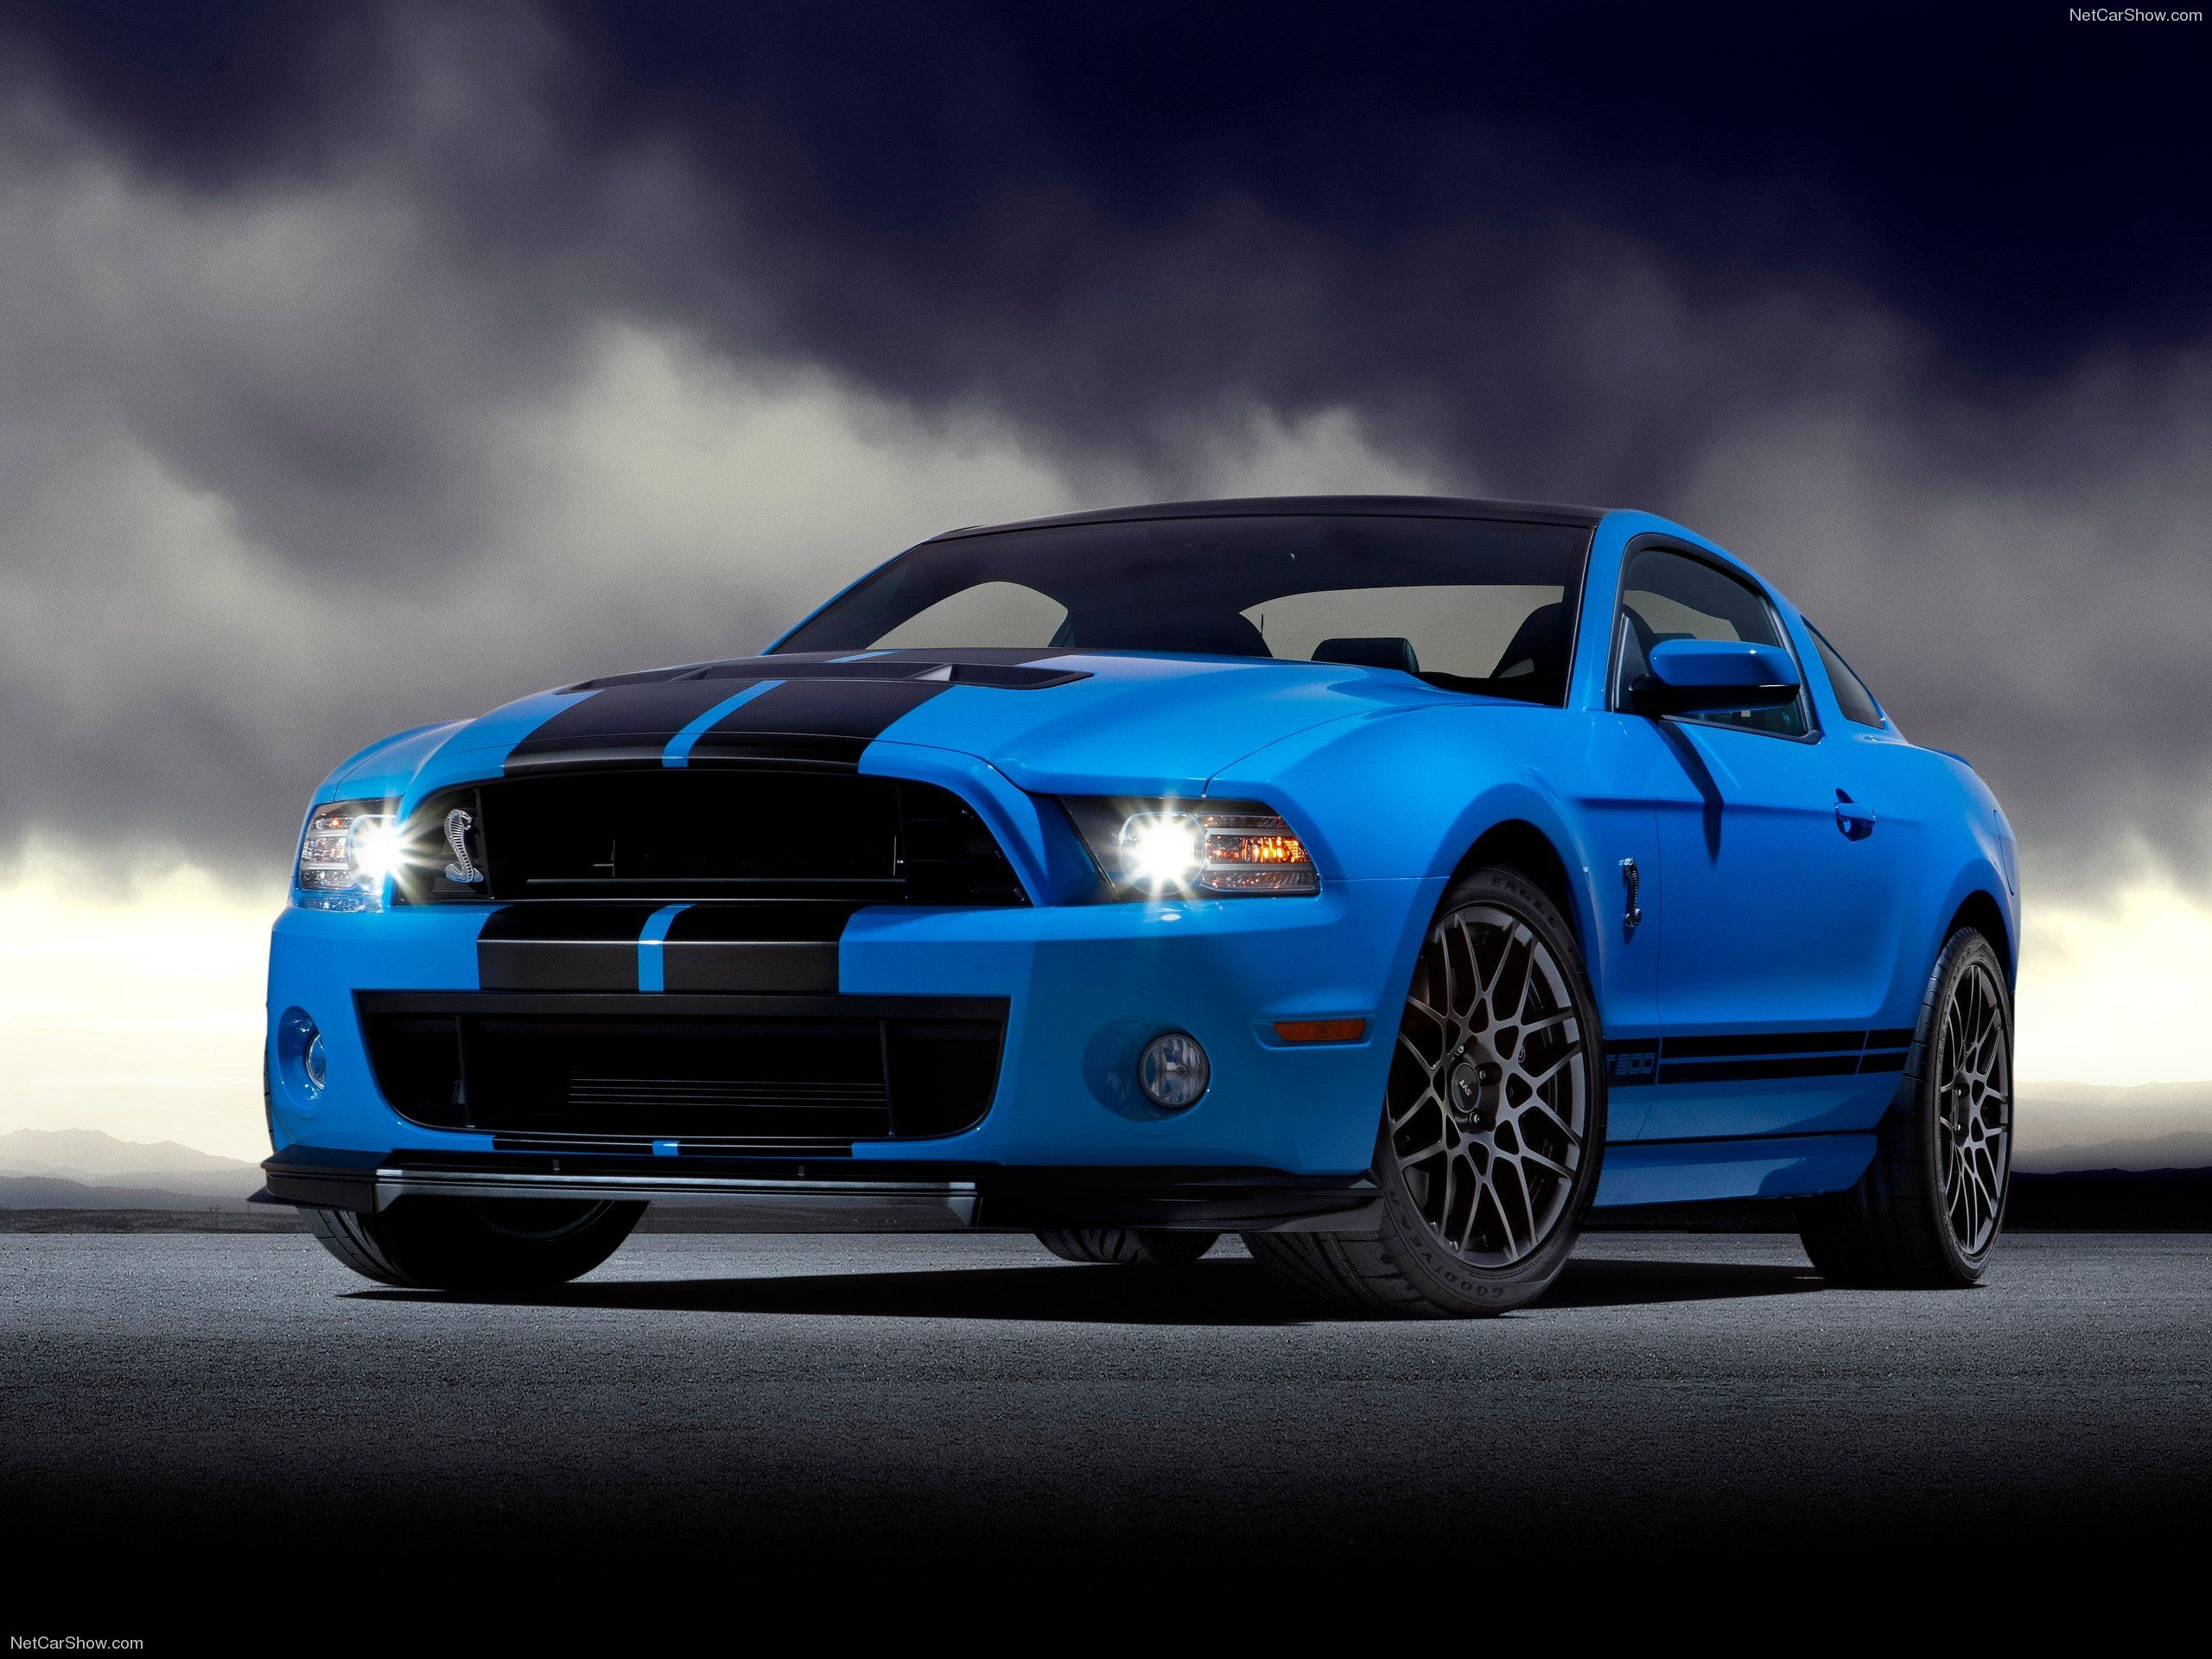 2013 Mustang Shelby GT500 Faster Than Camaro ZL1 and Corvette ZR1